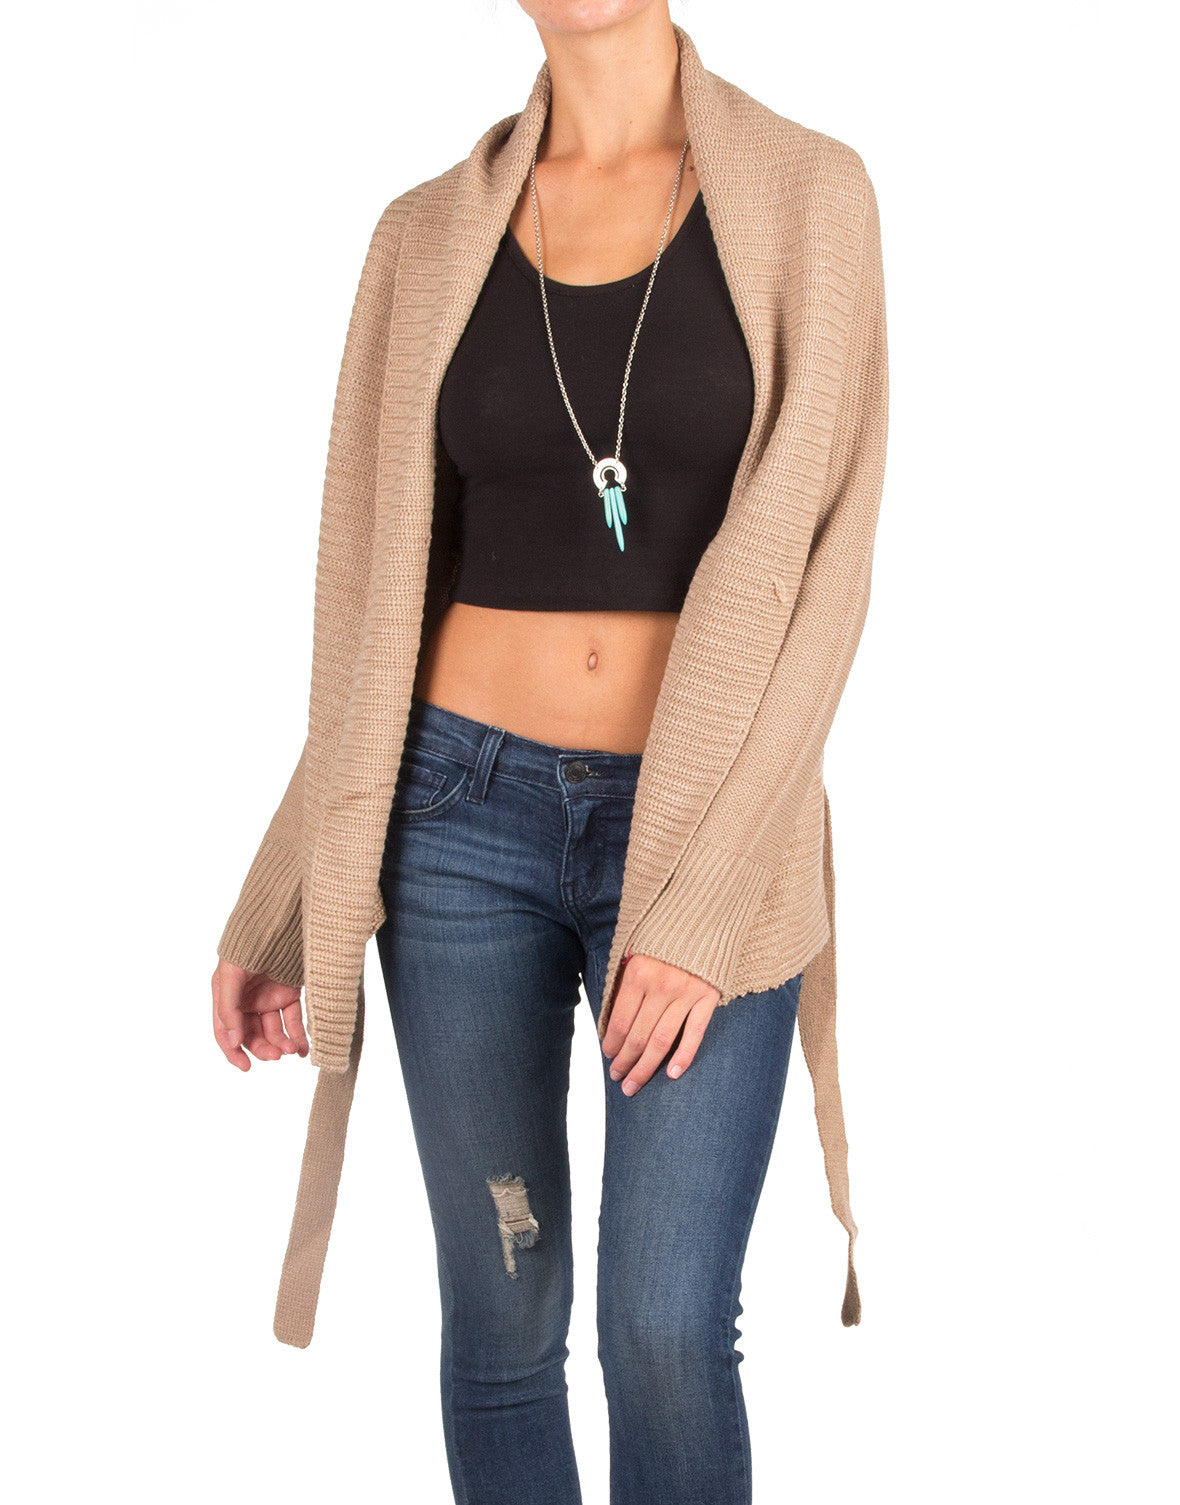 Knitted Cardigan with a Waist String - Taupe